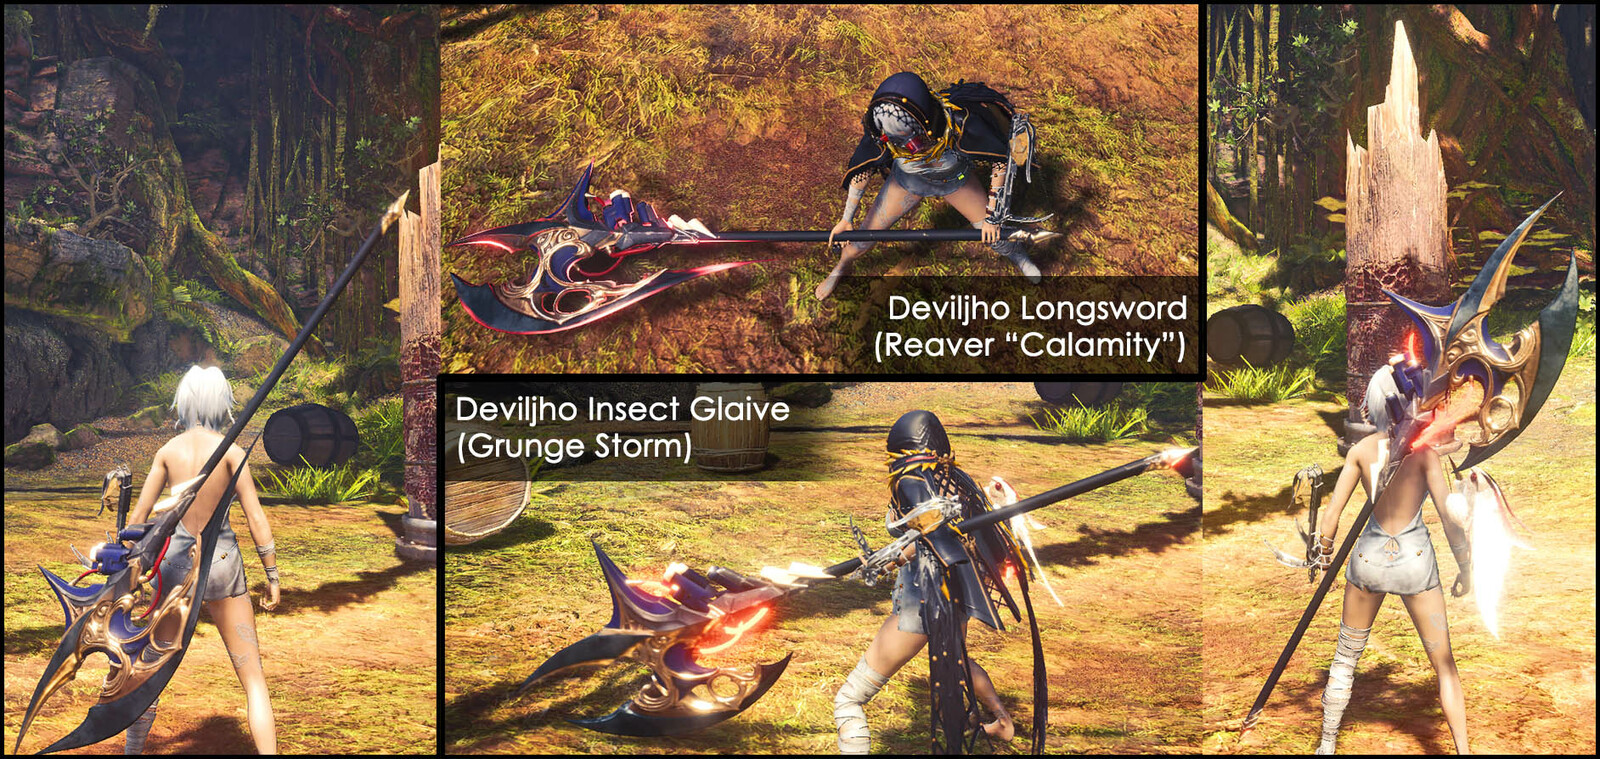 Samples of Io's halberd on the Longsword and Insect Glaive. The insect glaive glow changes color depending on what kinsect you have equipped.